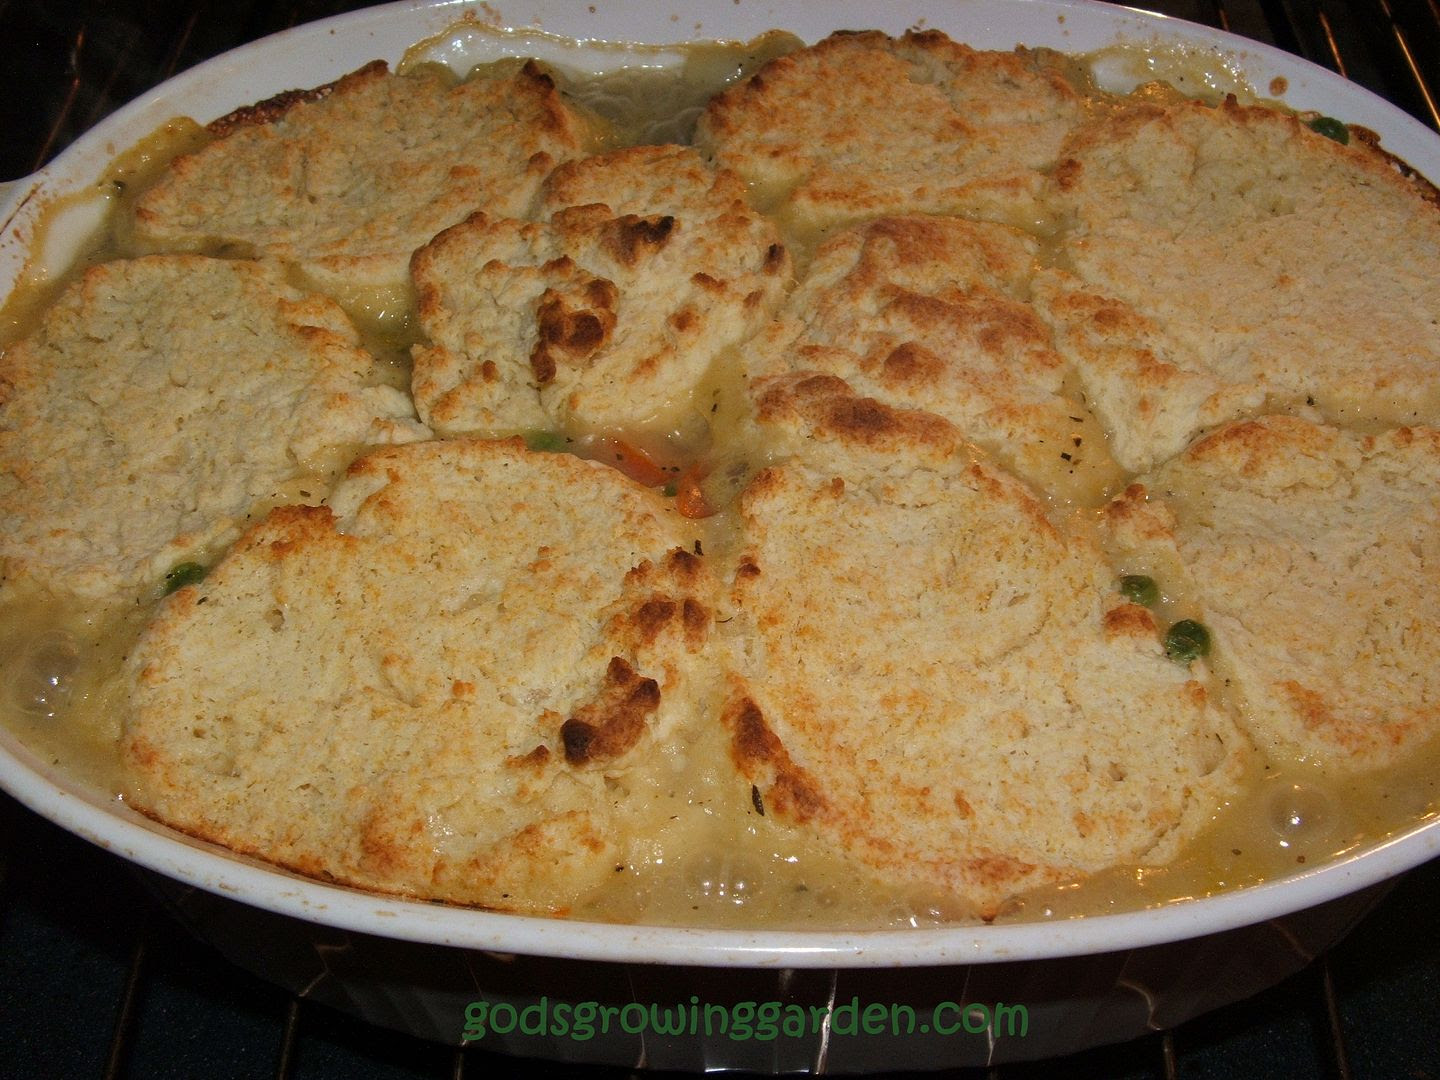 Springtime Chicken Pot Pie by Angie Ouellette-Tower for godsgrowinggarden.com photo 011_zps31ba15c2.jpg